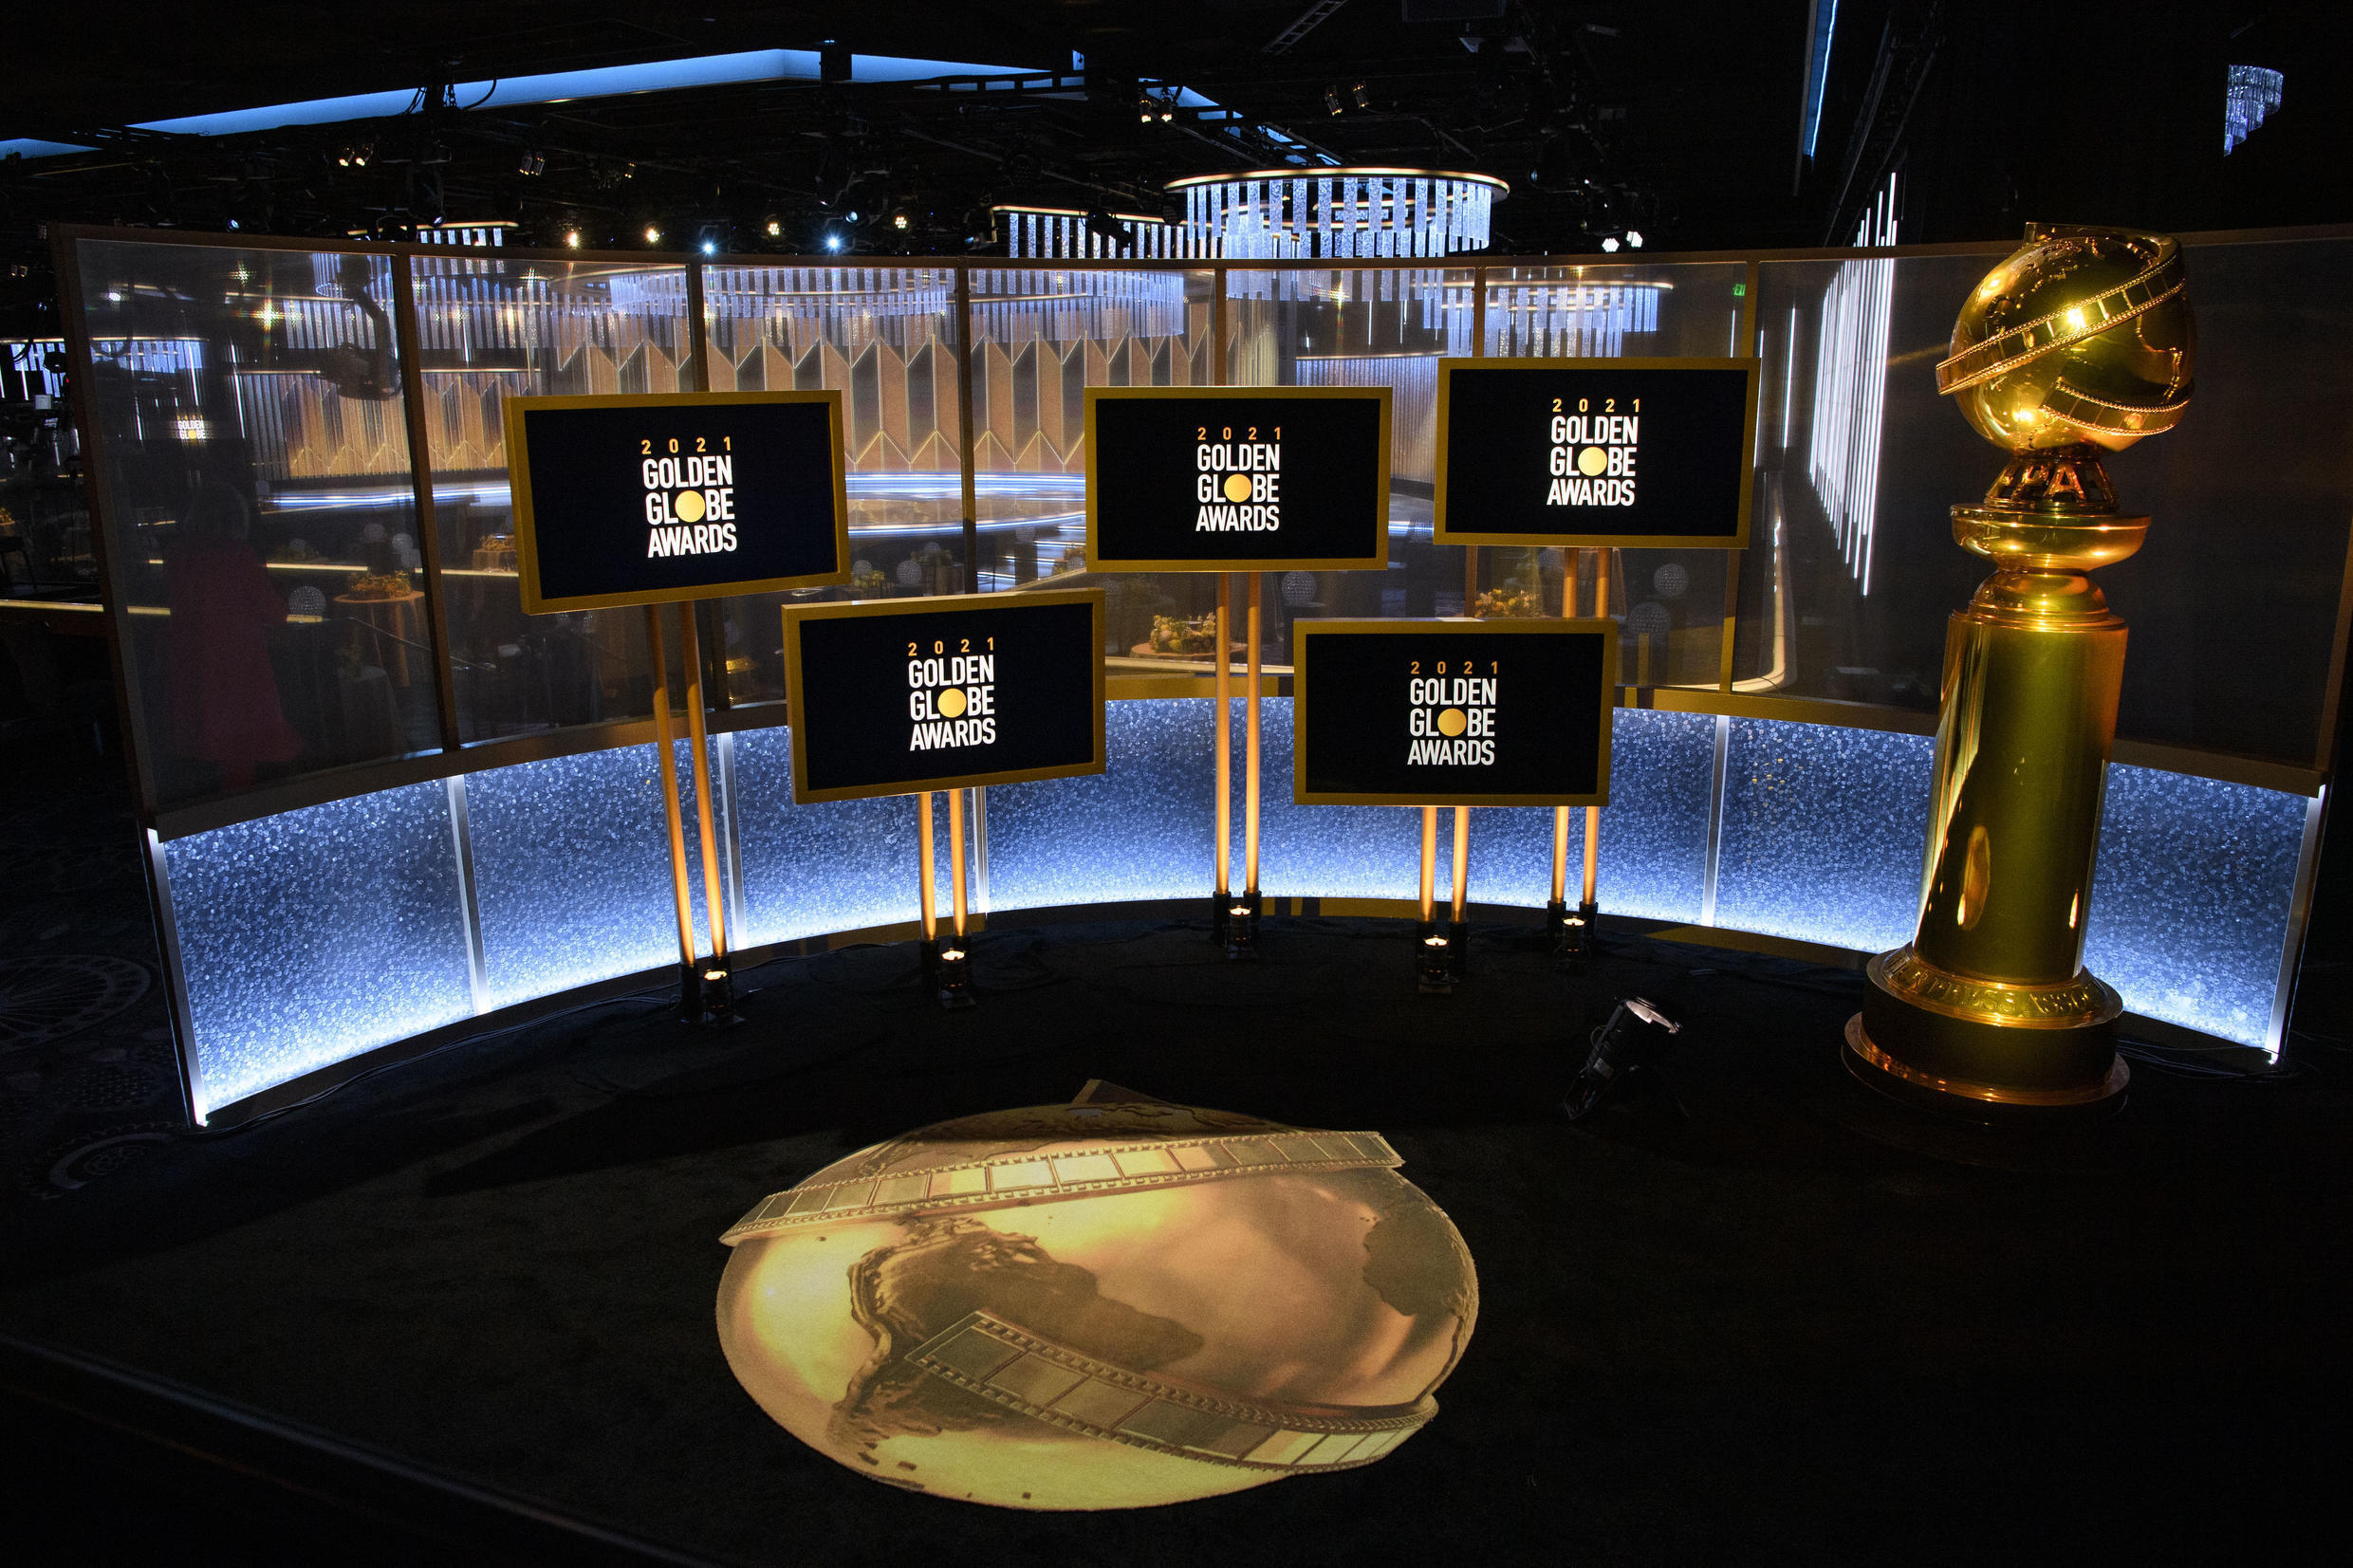 The Golden Globes was hosted from the Beverly Hilton, seen here, and New York's Rainbow Room